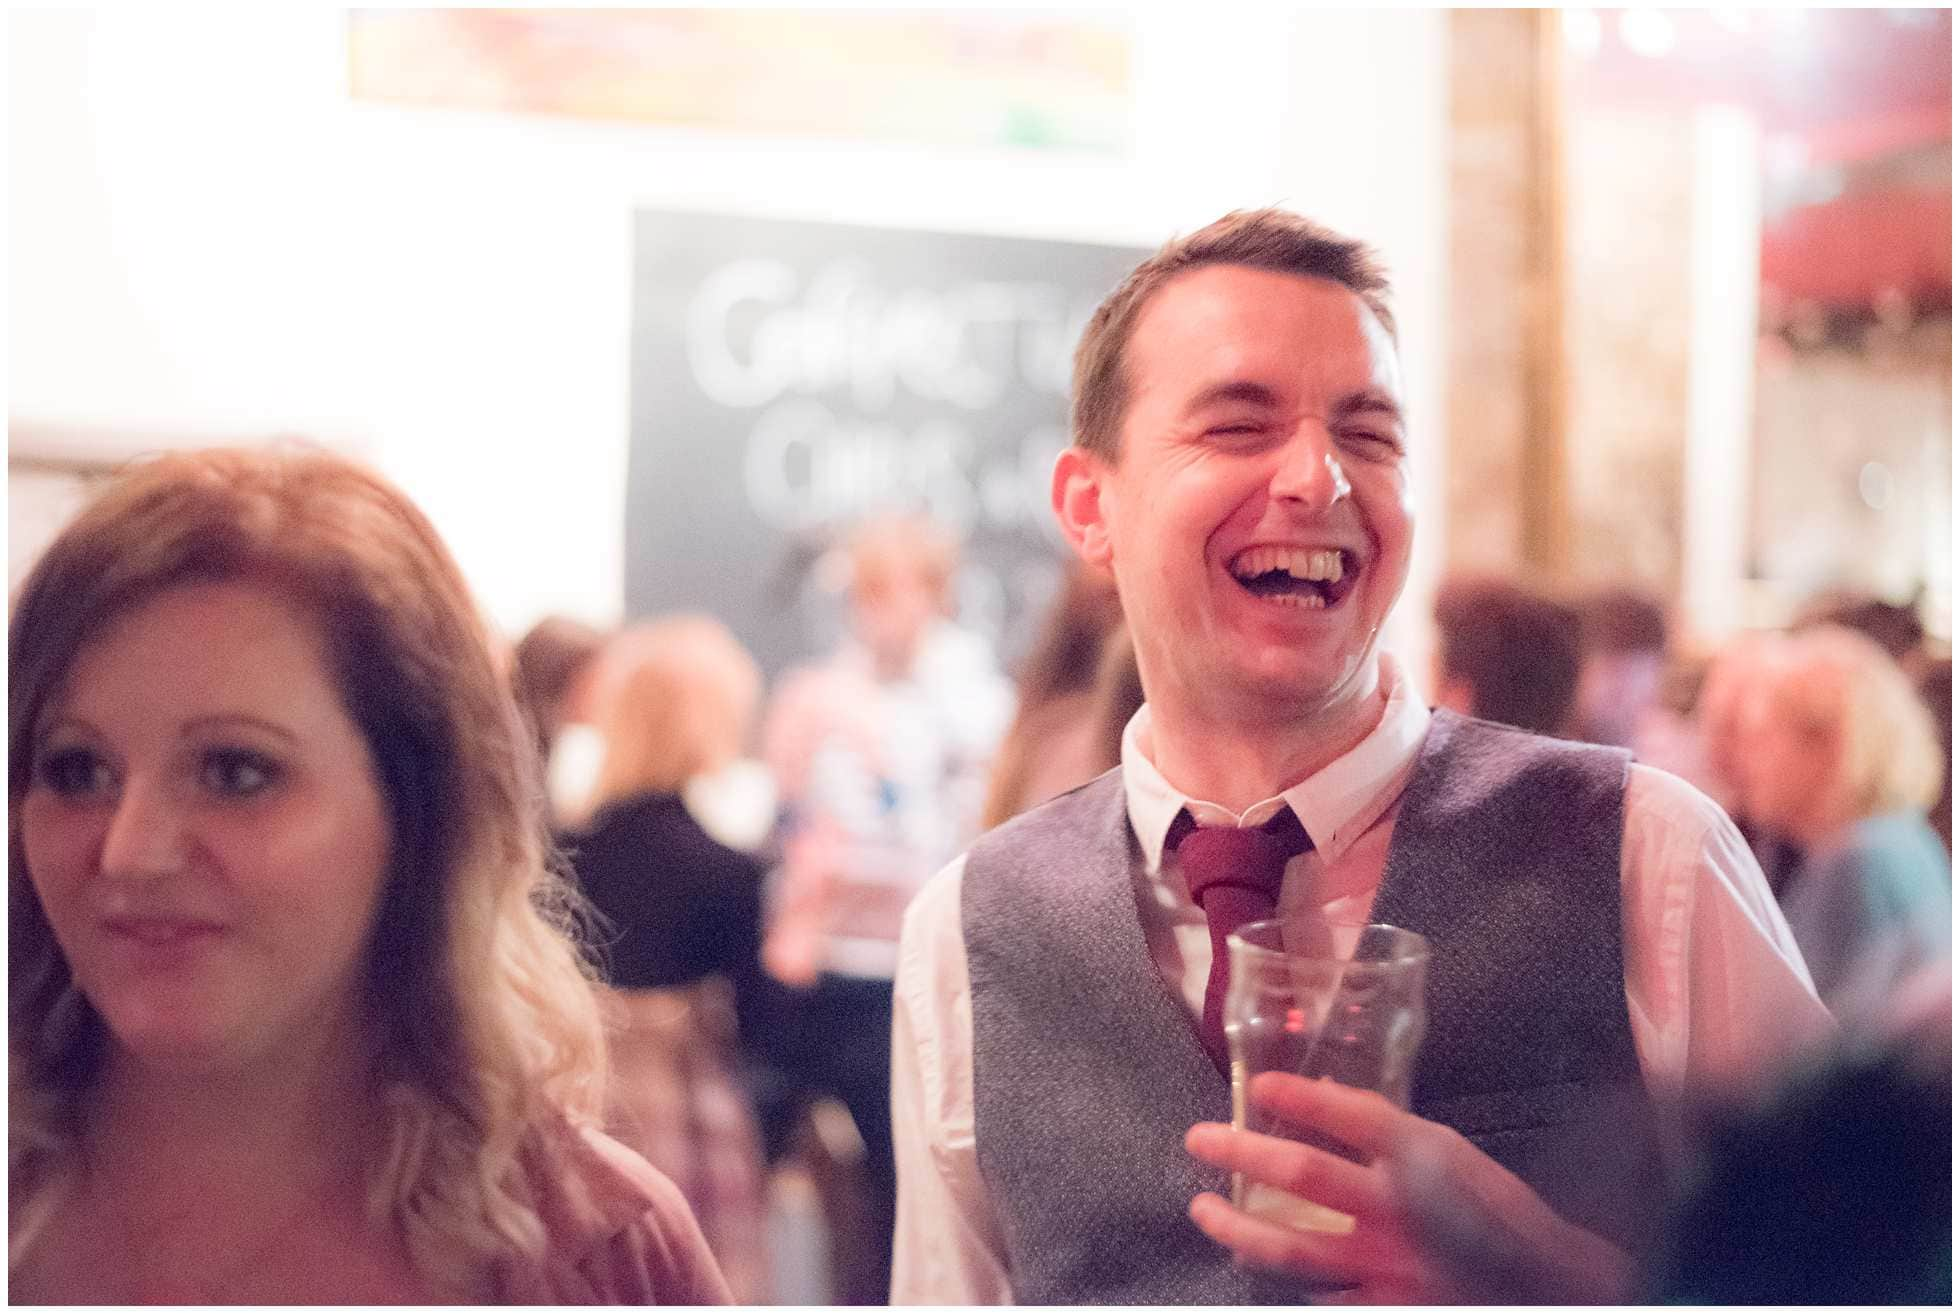 Laughter at a wedding at the Star Chester Road London